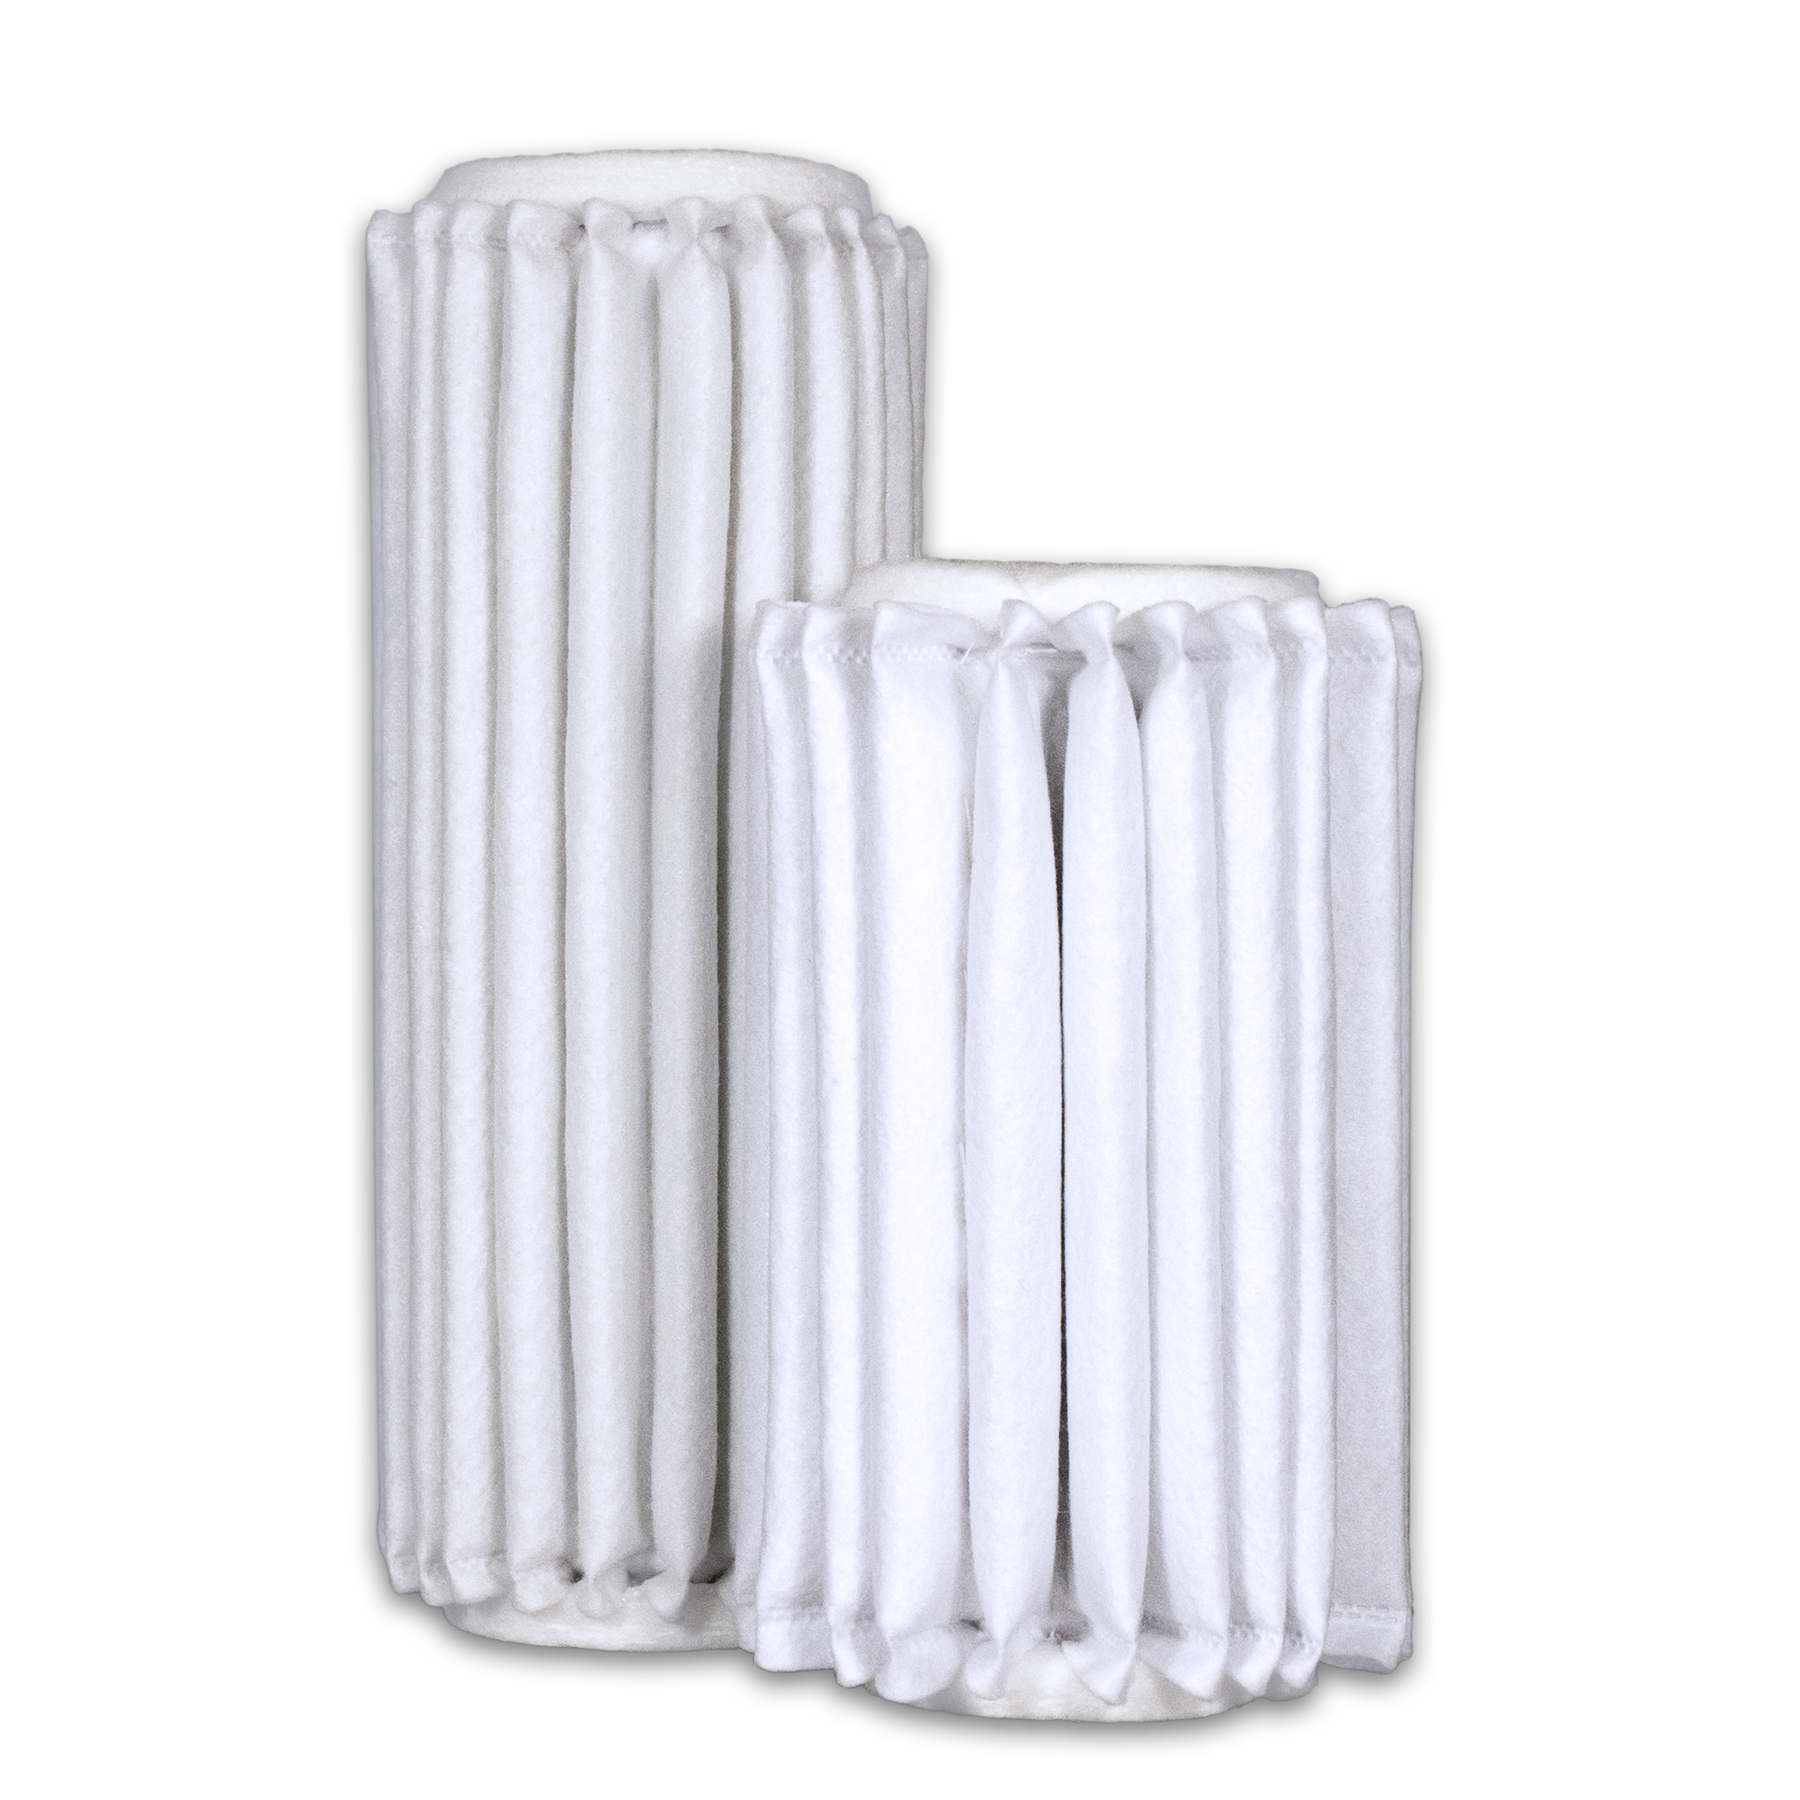 Industrial sewn end filters from Sidco Filter to replace Shawndra Sparks, Consler Graver, Dollinger, Endustra, Filpro, Filter Engineering, IFM, Ingersoll Rand, NAFCO, and Sunshine filter elements.